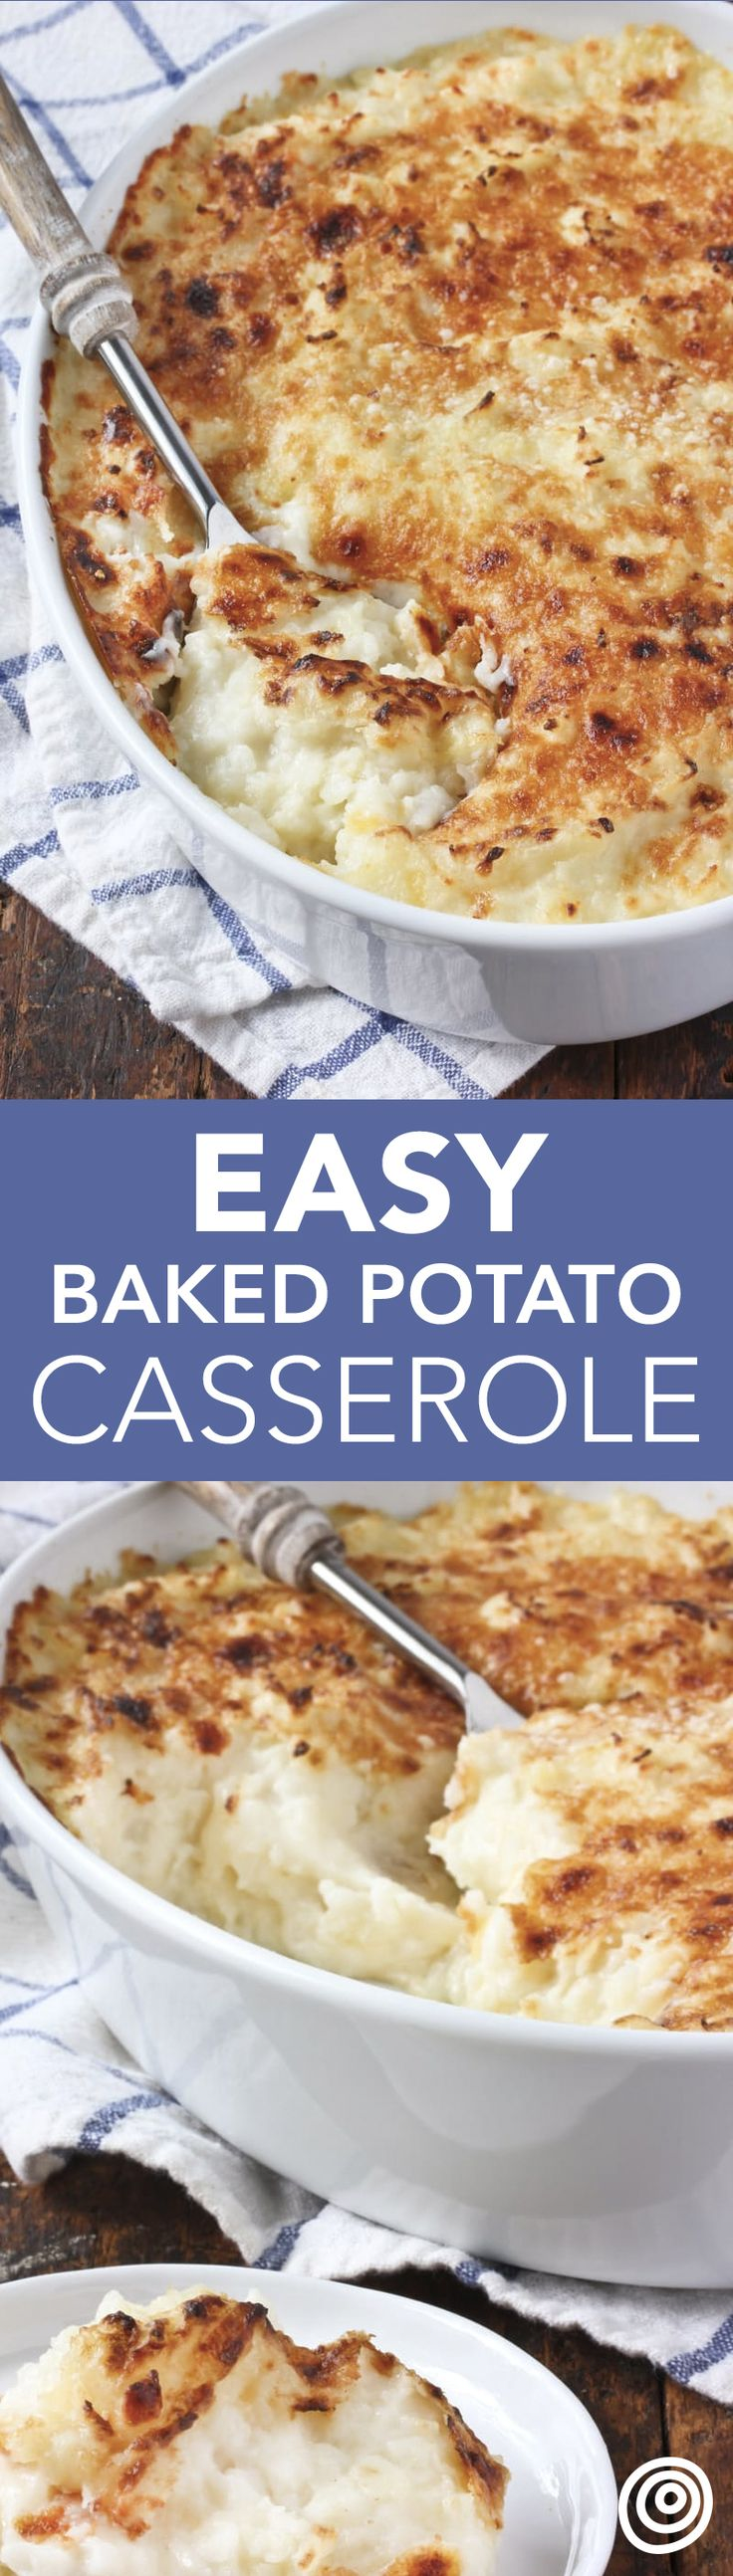 Baked Potato Casserole Recipe. This classic comfort food side dish is also known as smashed potato casserole or sour cream potatoes. No matter what you call it, it's INCREDIBLE and absolutely DELICIOUS. This oven baked treat would be excellent to add to a list of unique ideas for your next Thanksgiving or Christmas side dish. You'll need potatoes, sour cream (or greek yogurt), milk, sharp cheddar cheese, shallots, and parmesan cheese.